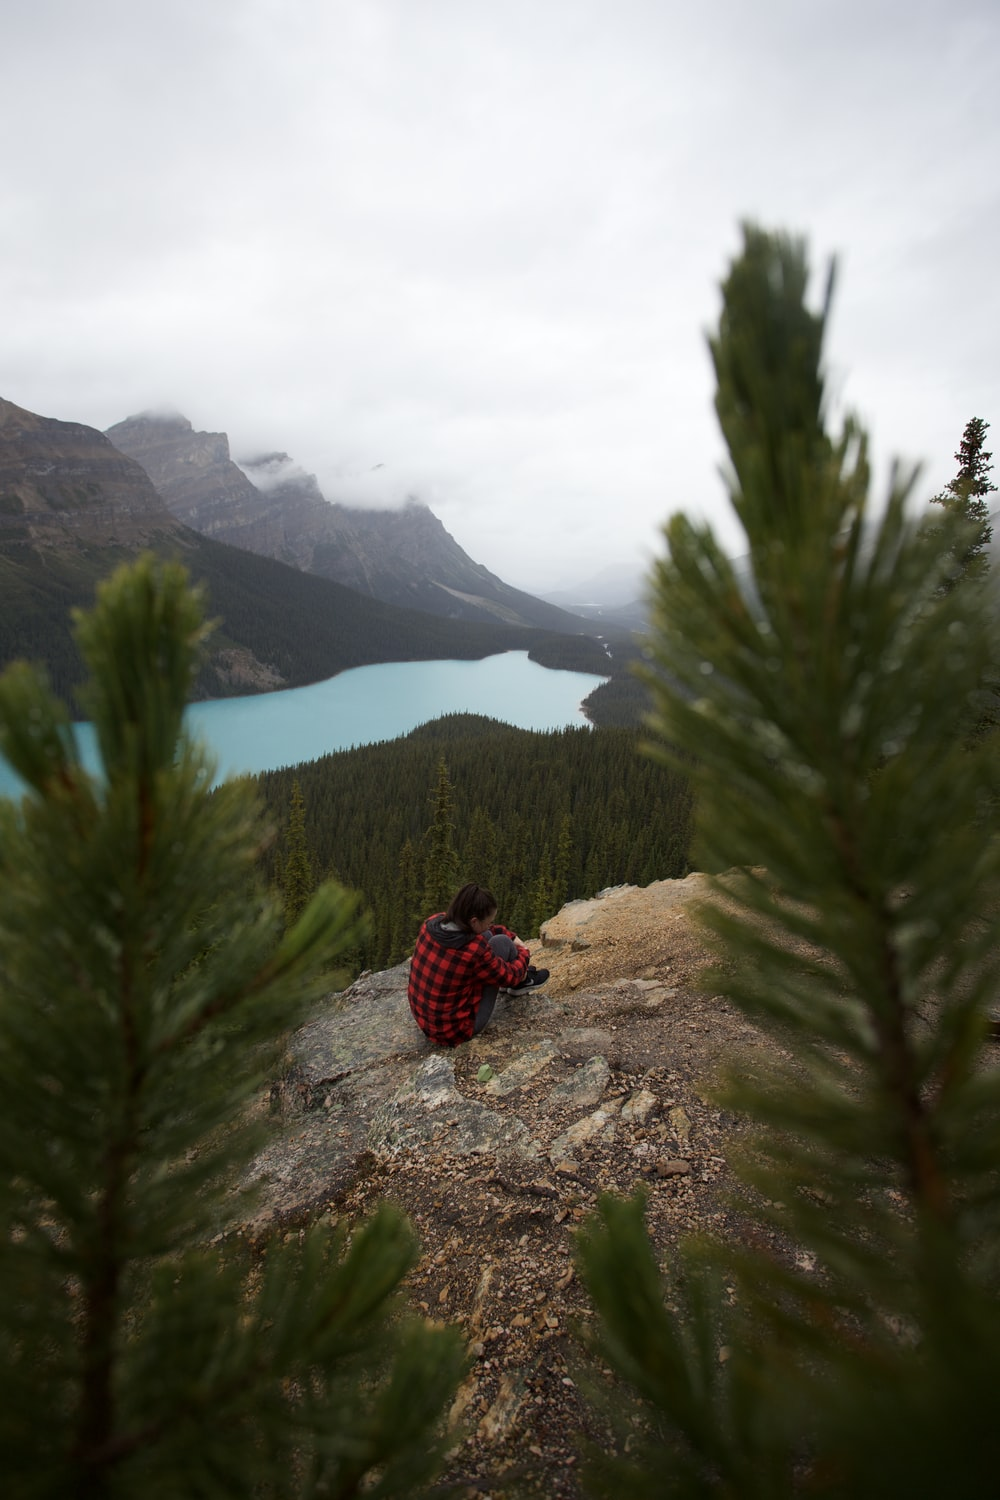 person sitting on cliff viewing mountain and lake under white and gray sky during daytime